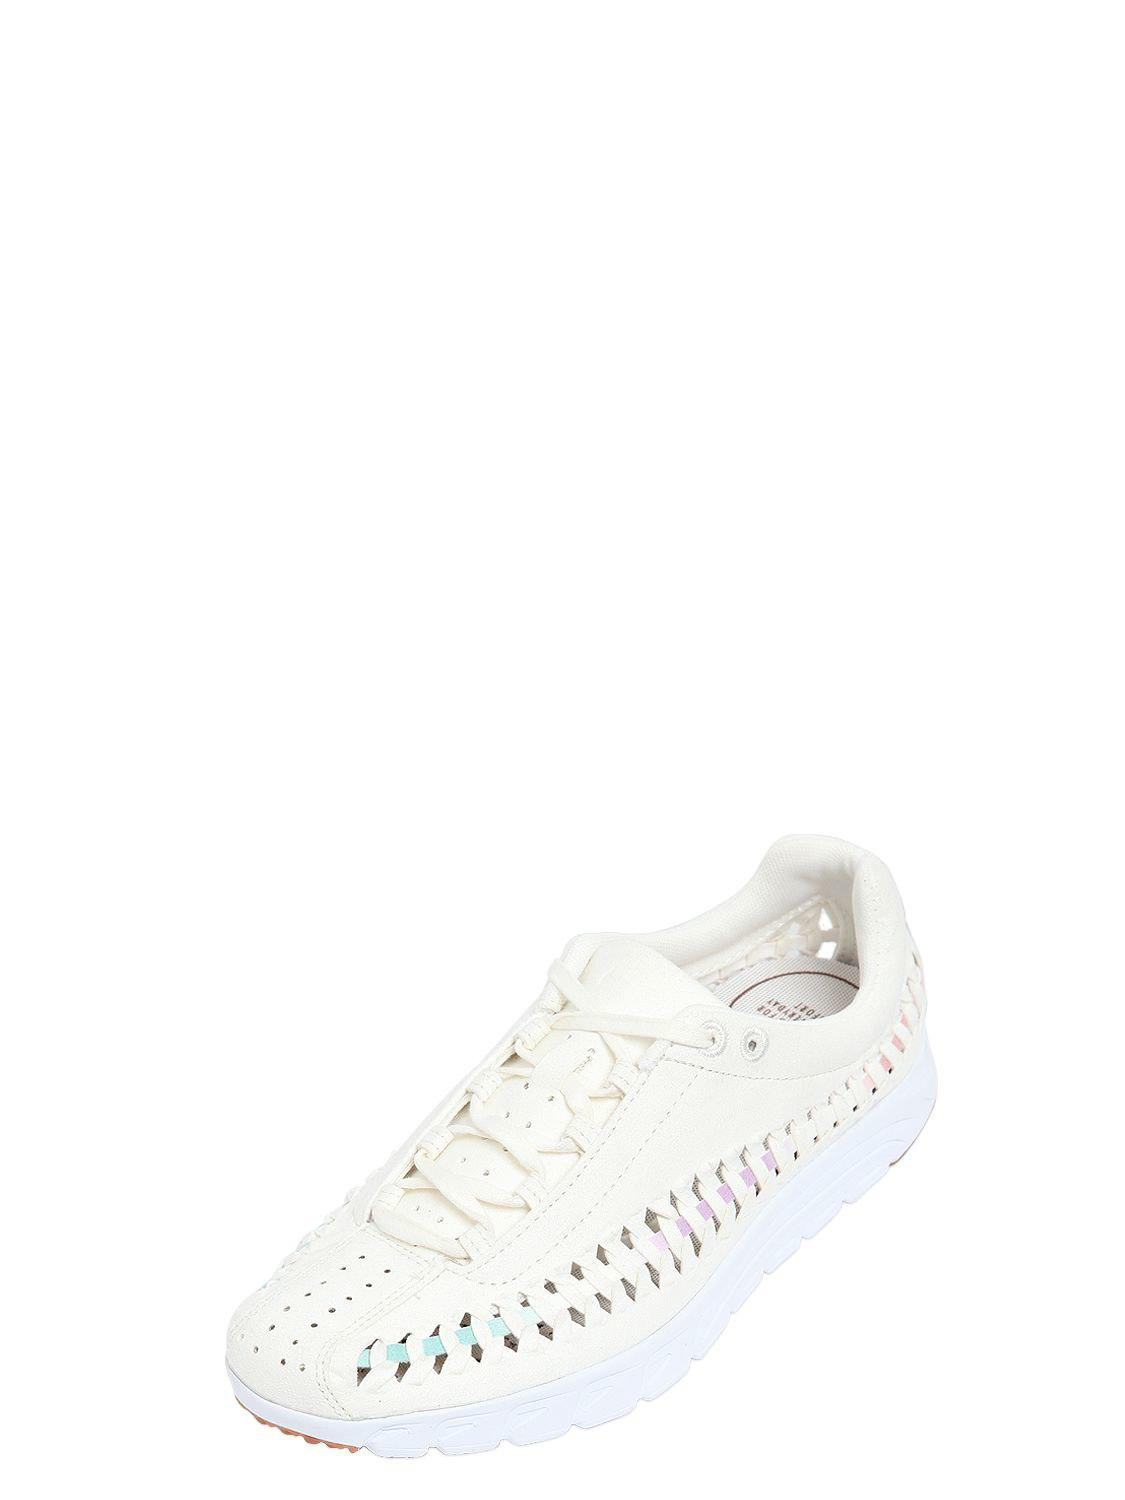 3155dae46a076c Nike - White Mayfly Woven Suede Sneakers - Lyst. View fullscreen